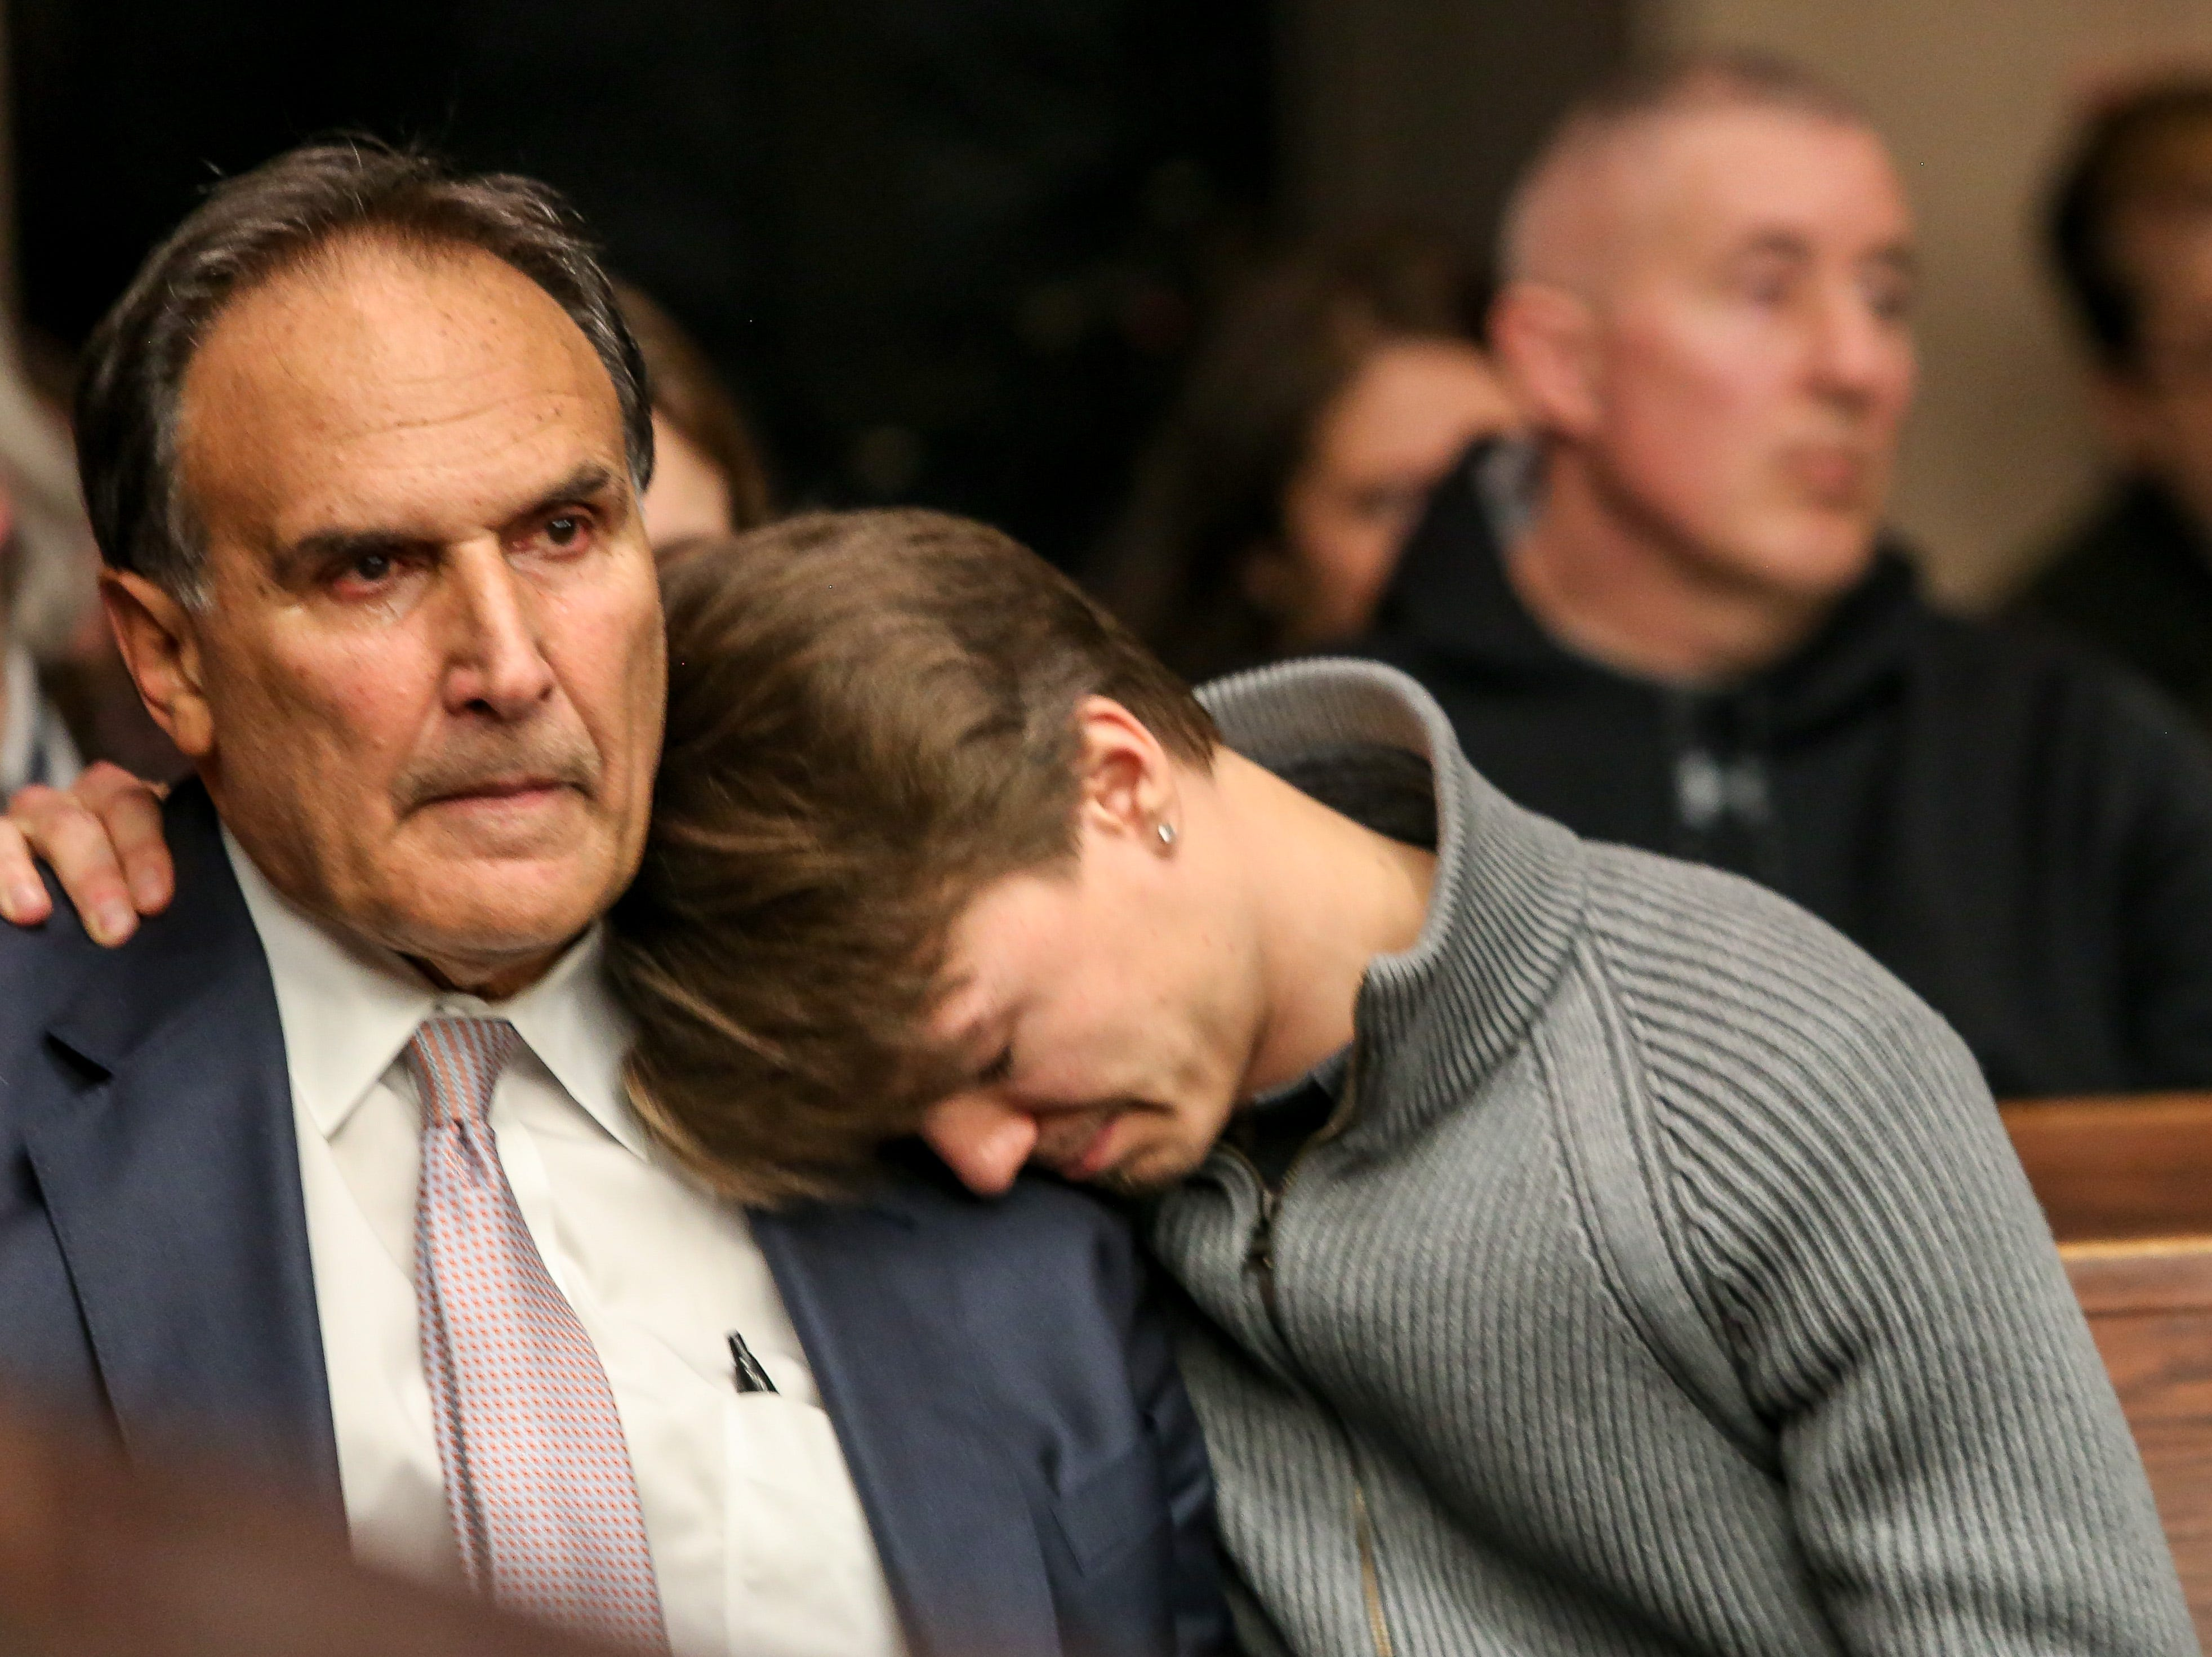 Victim's family member's Fred Seeman is hugged by his son Ford Seeman during Amy Locane's resentencing for a fatal 2010 auto accident inside Judge Kevin Shanahan's courtroom at the Somerset County Superior Courthouse in Somerville on February 15, 2019. Alexandra Pais/ for the Courier News